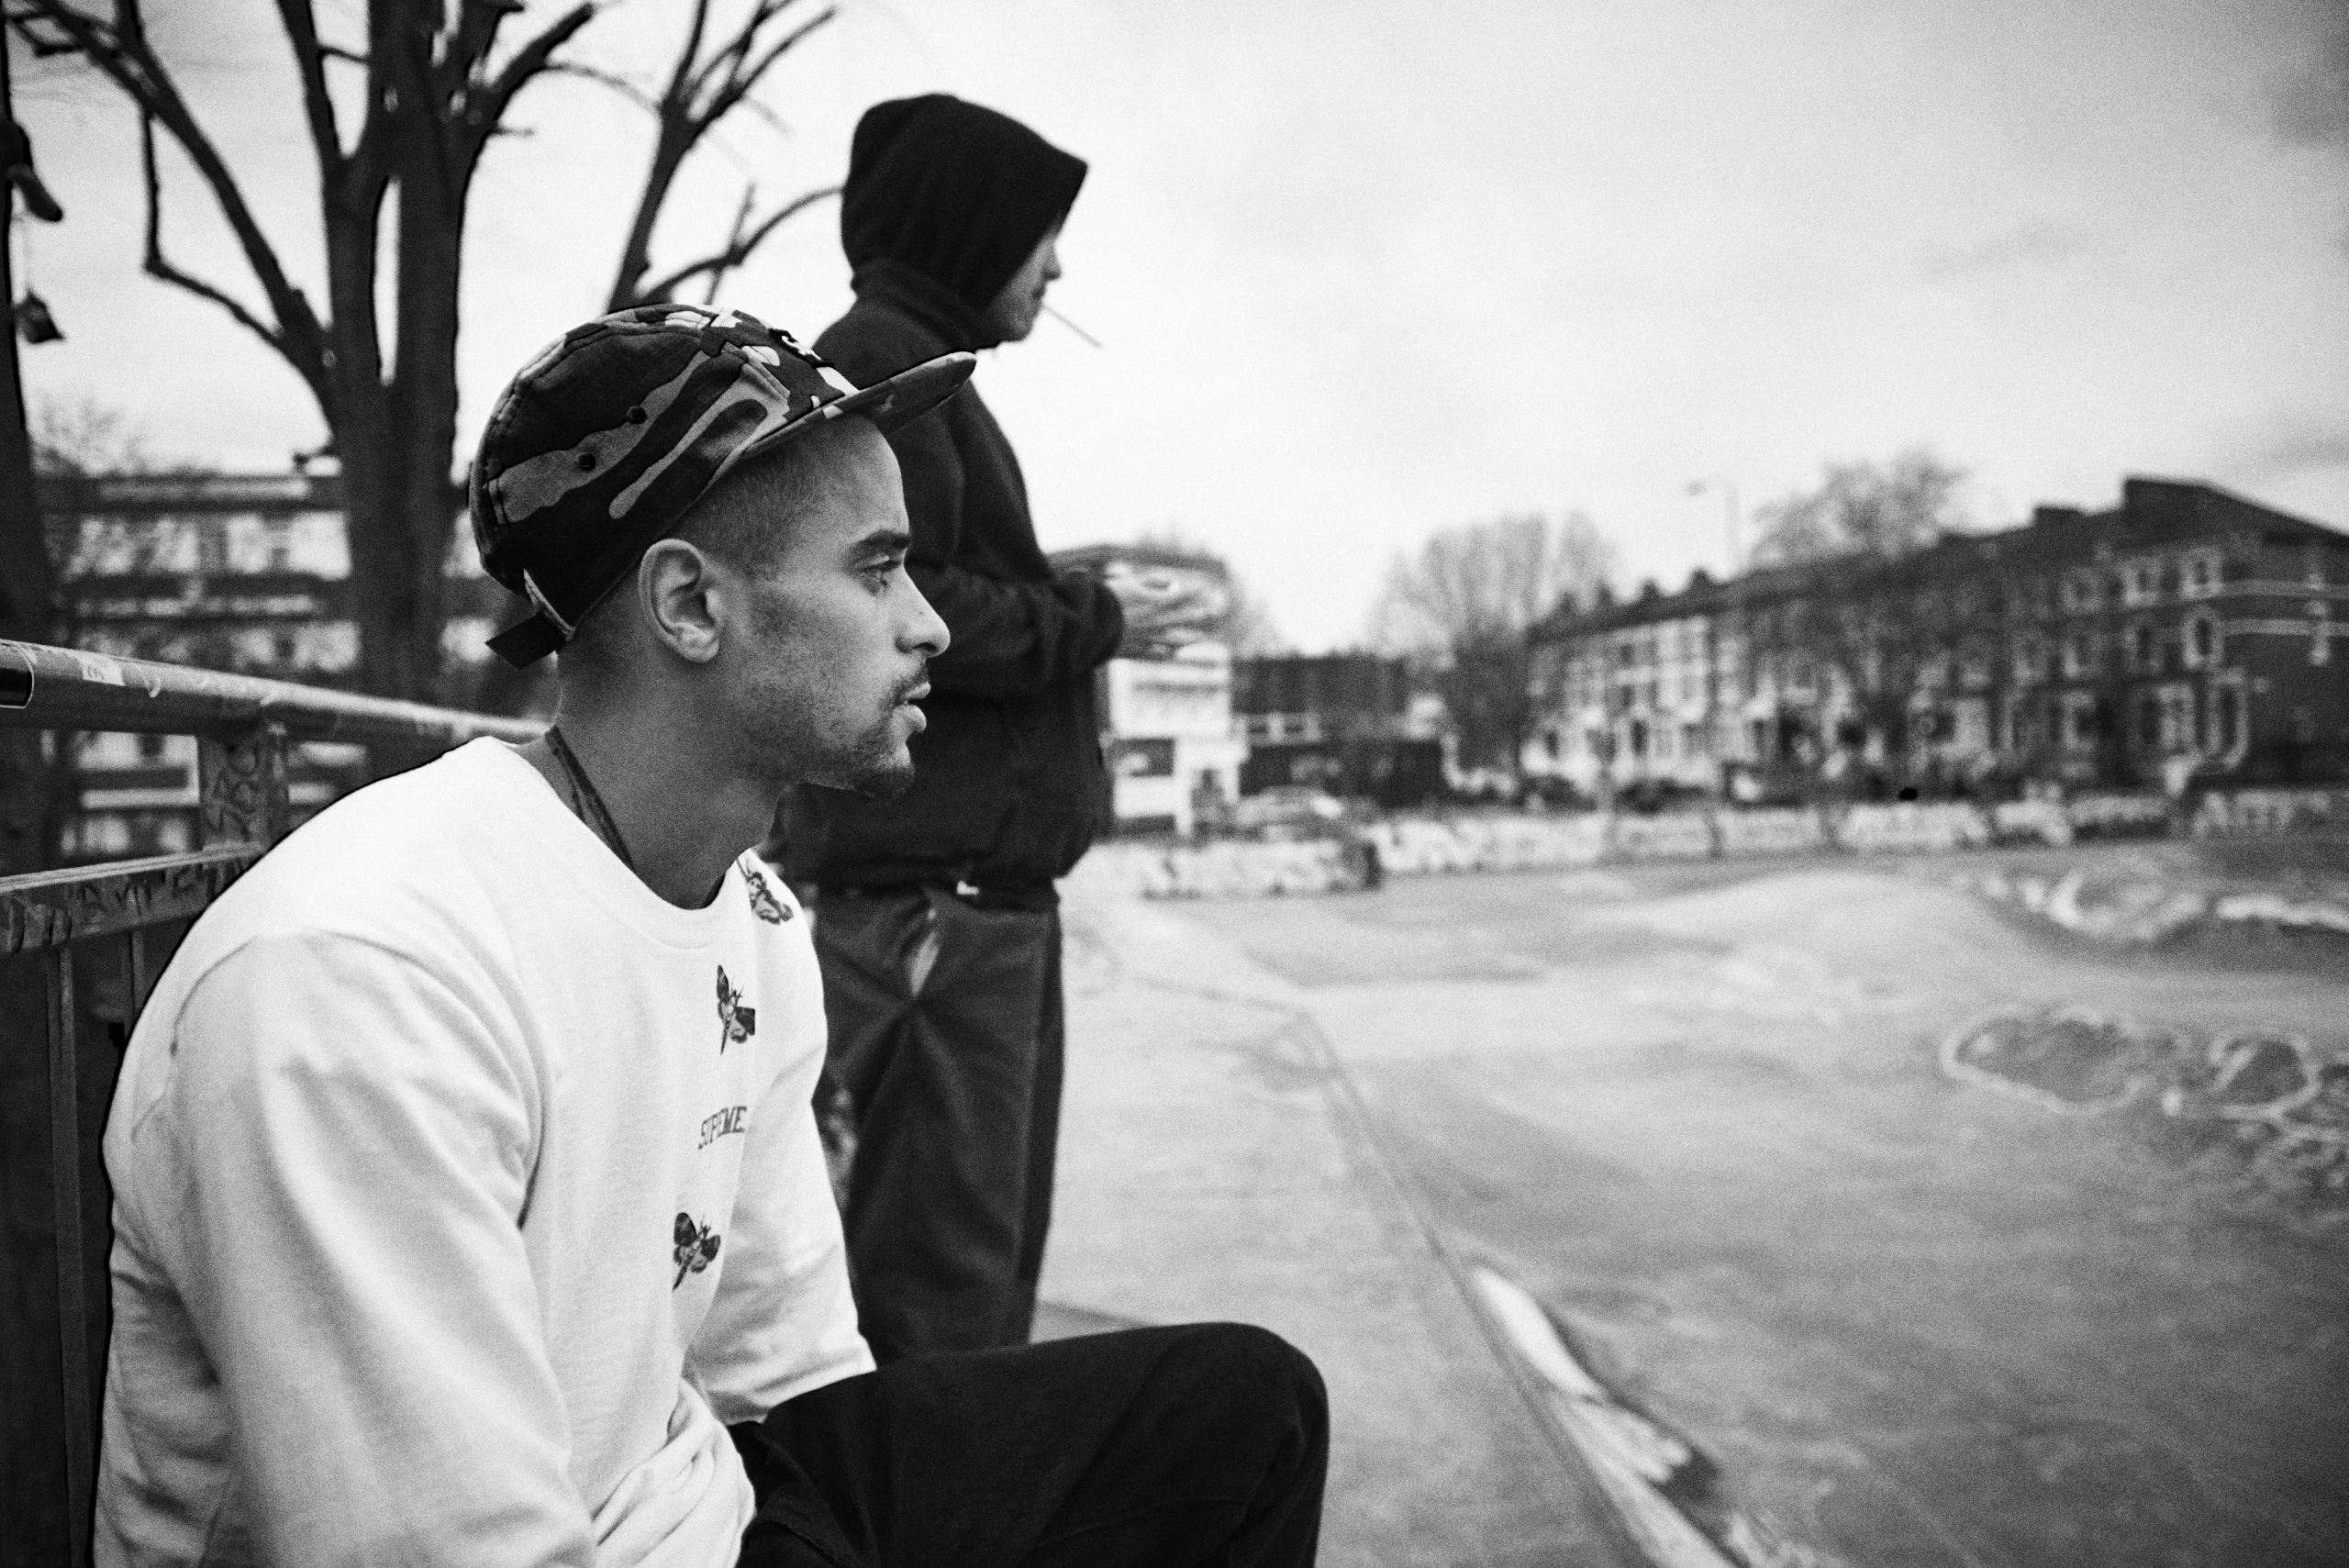 Brixton-skate-park-Matt-Stansfield-Lifestyle-Youth-Culture_2